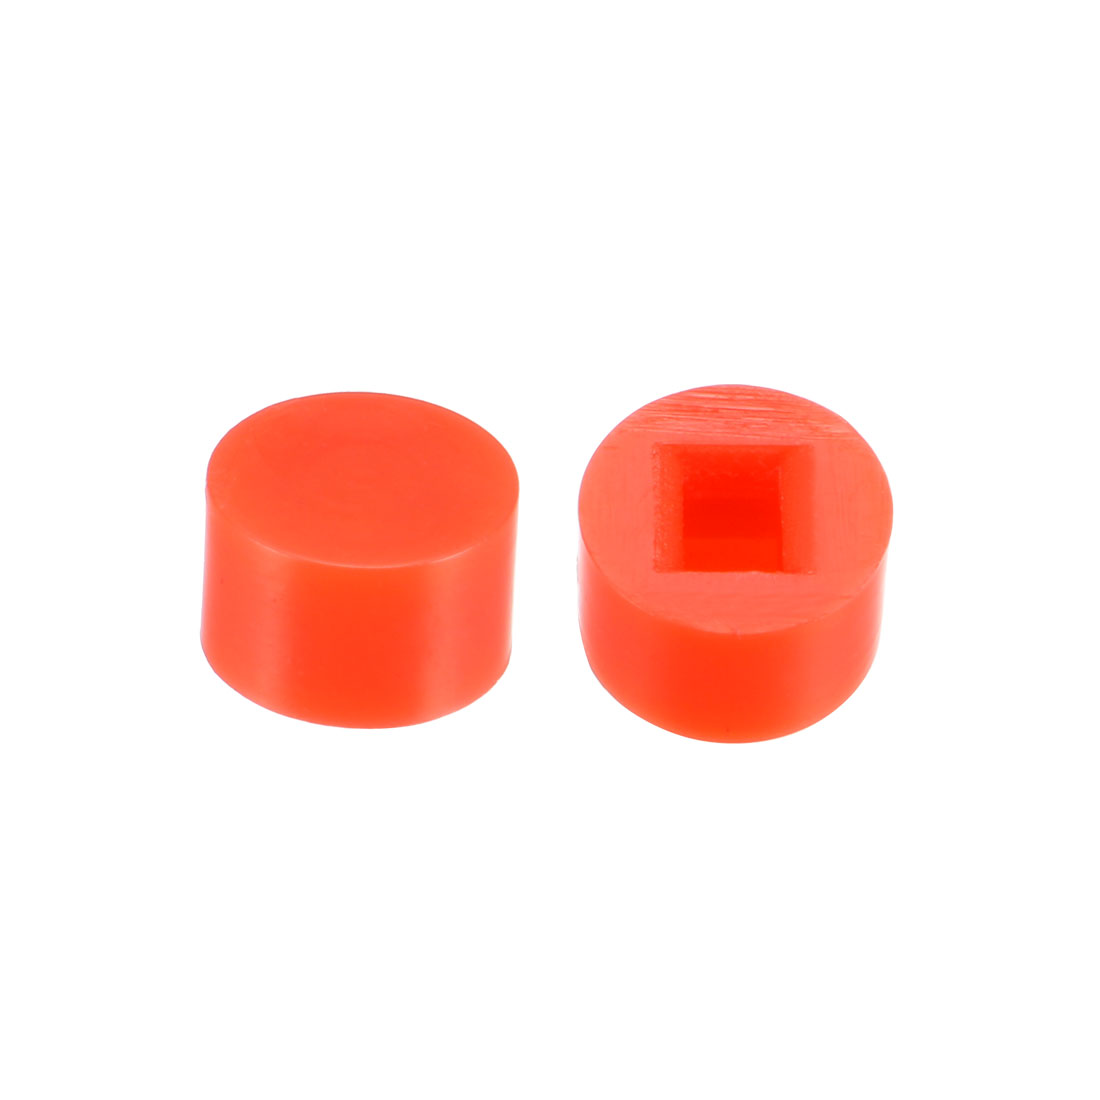 40Pcs 6x3.7mm Pushbutton Switch Caps Cover for 5.8x5.8 Latching Tact Switch Red